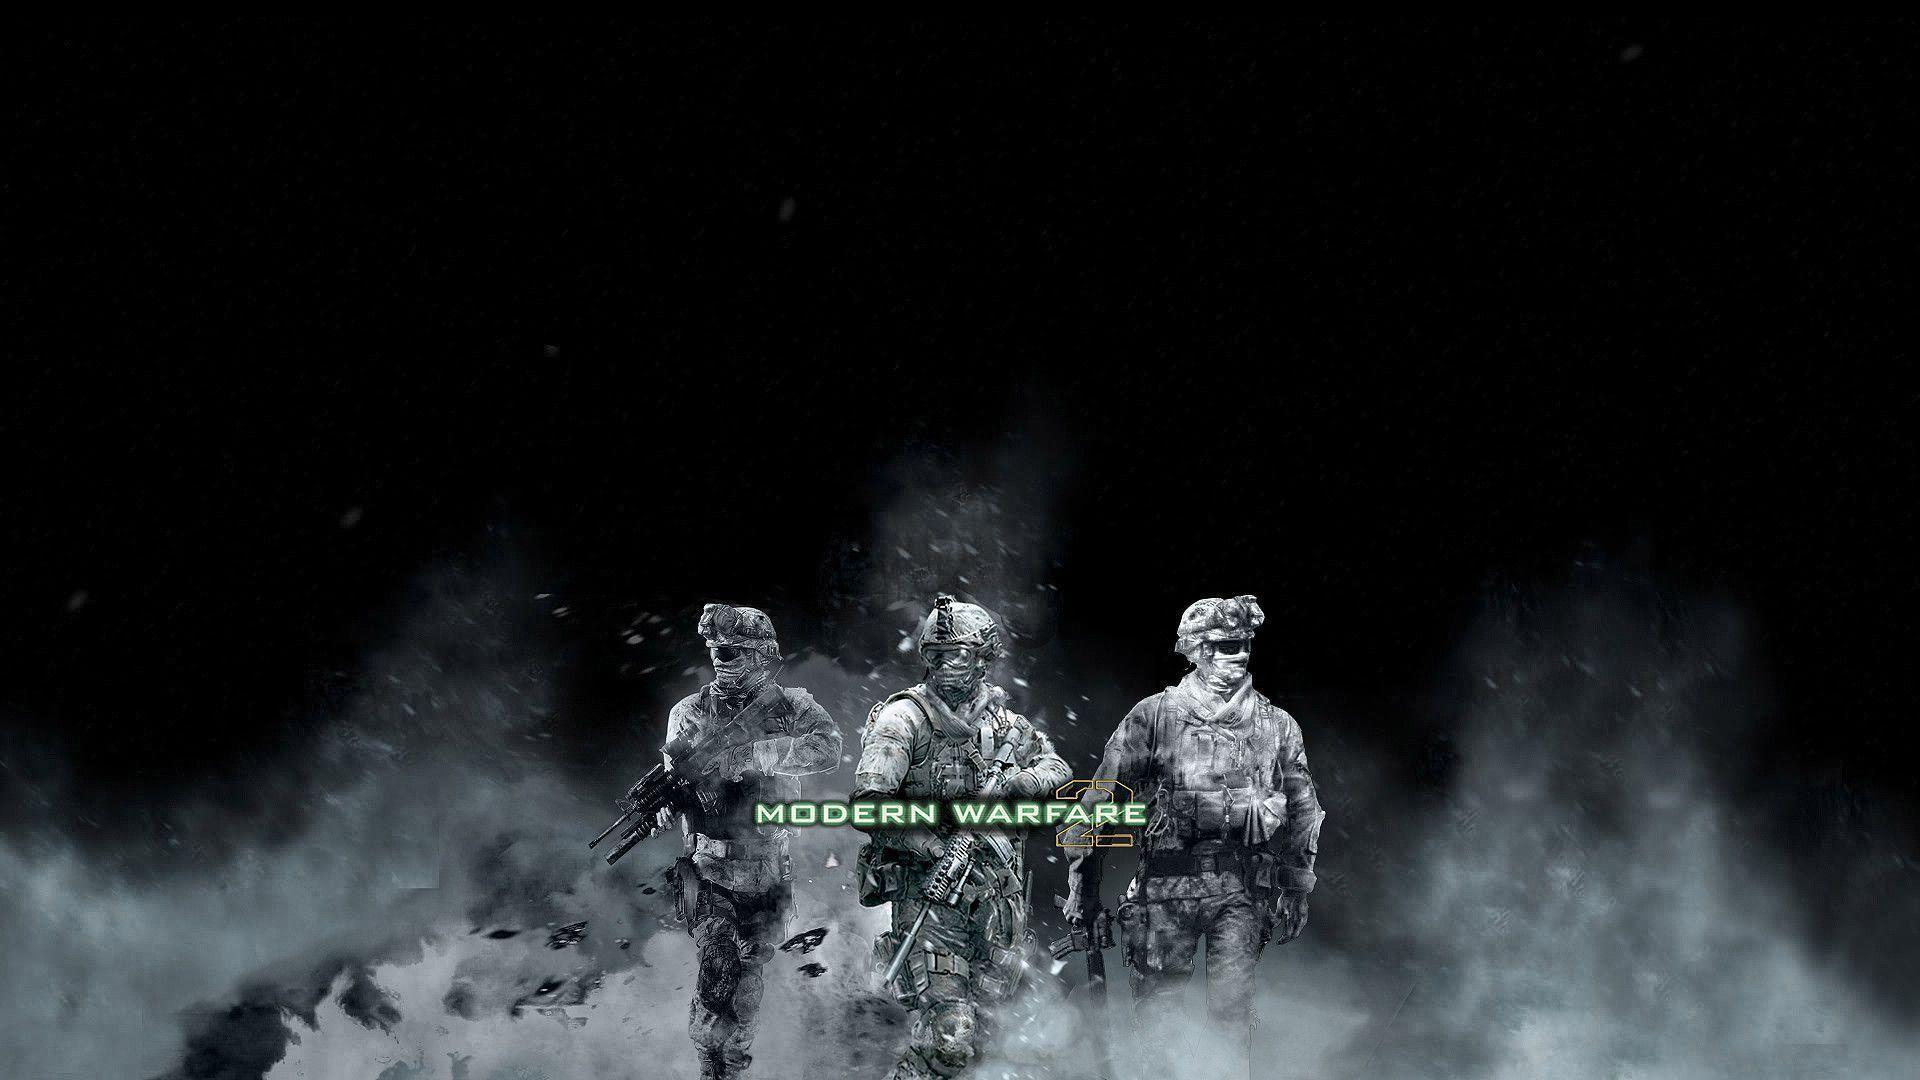 Mw2 Wallpapers  Wallpaper Cave